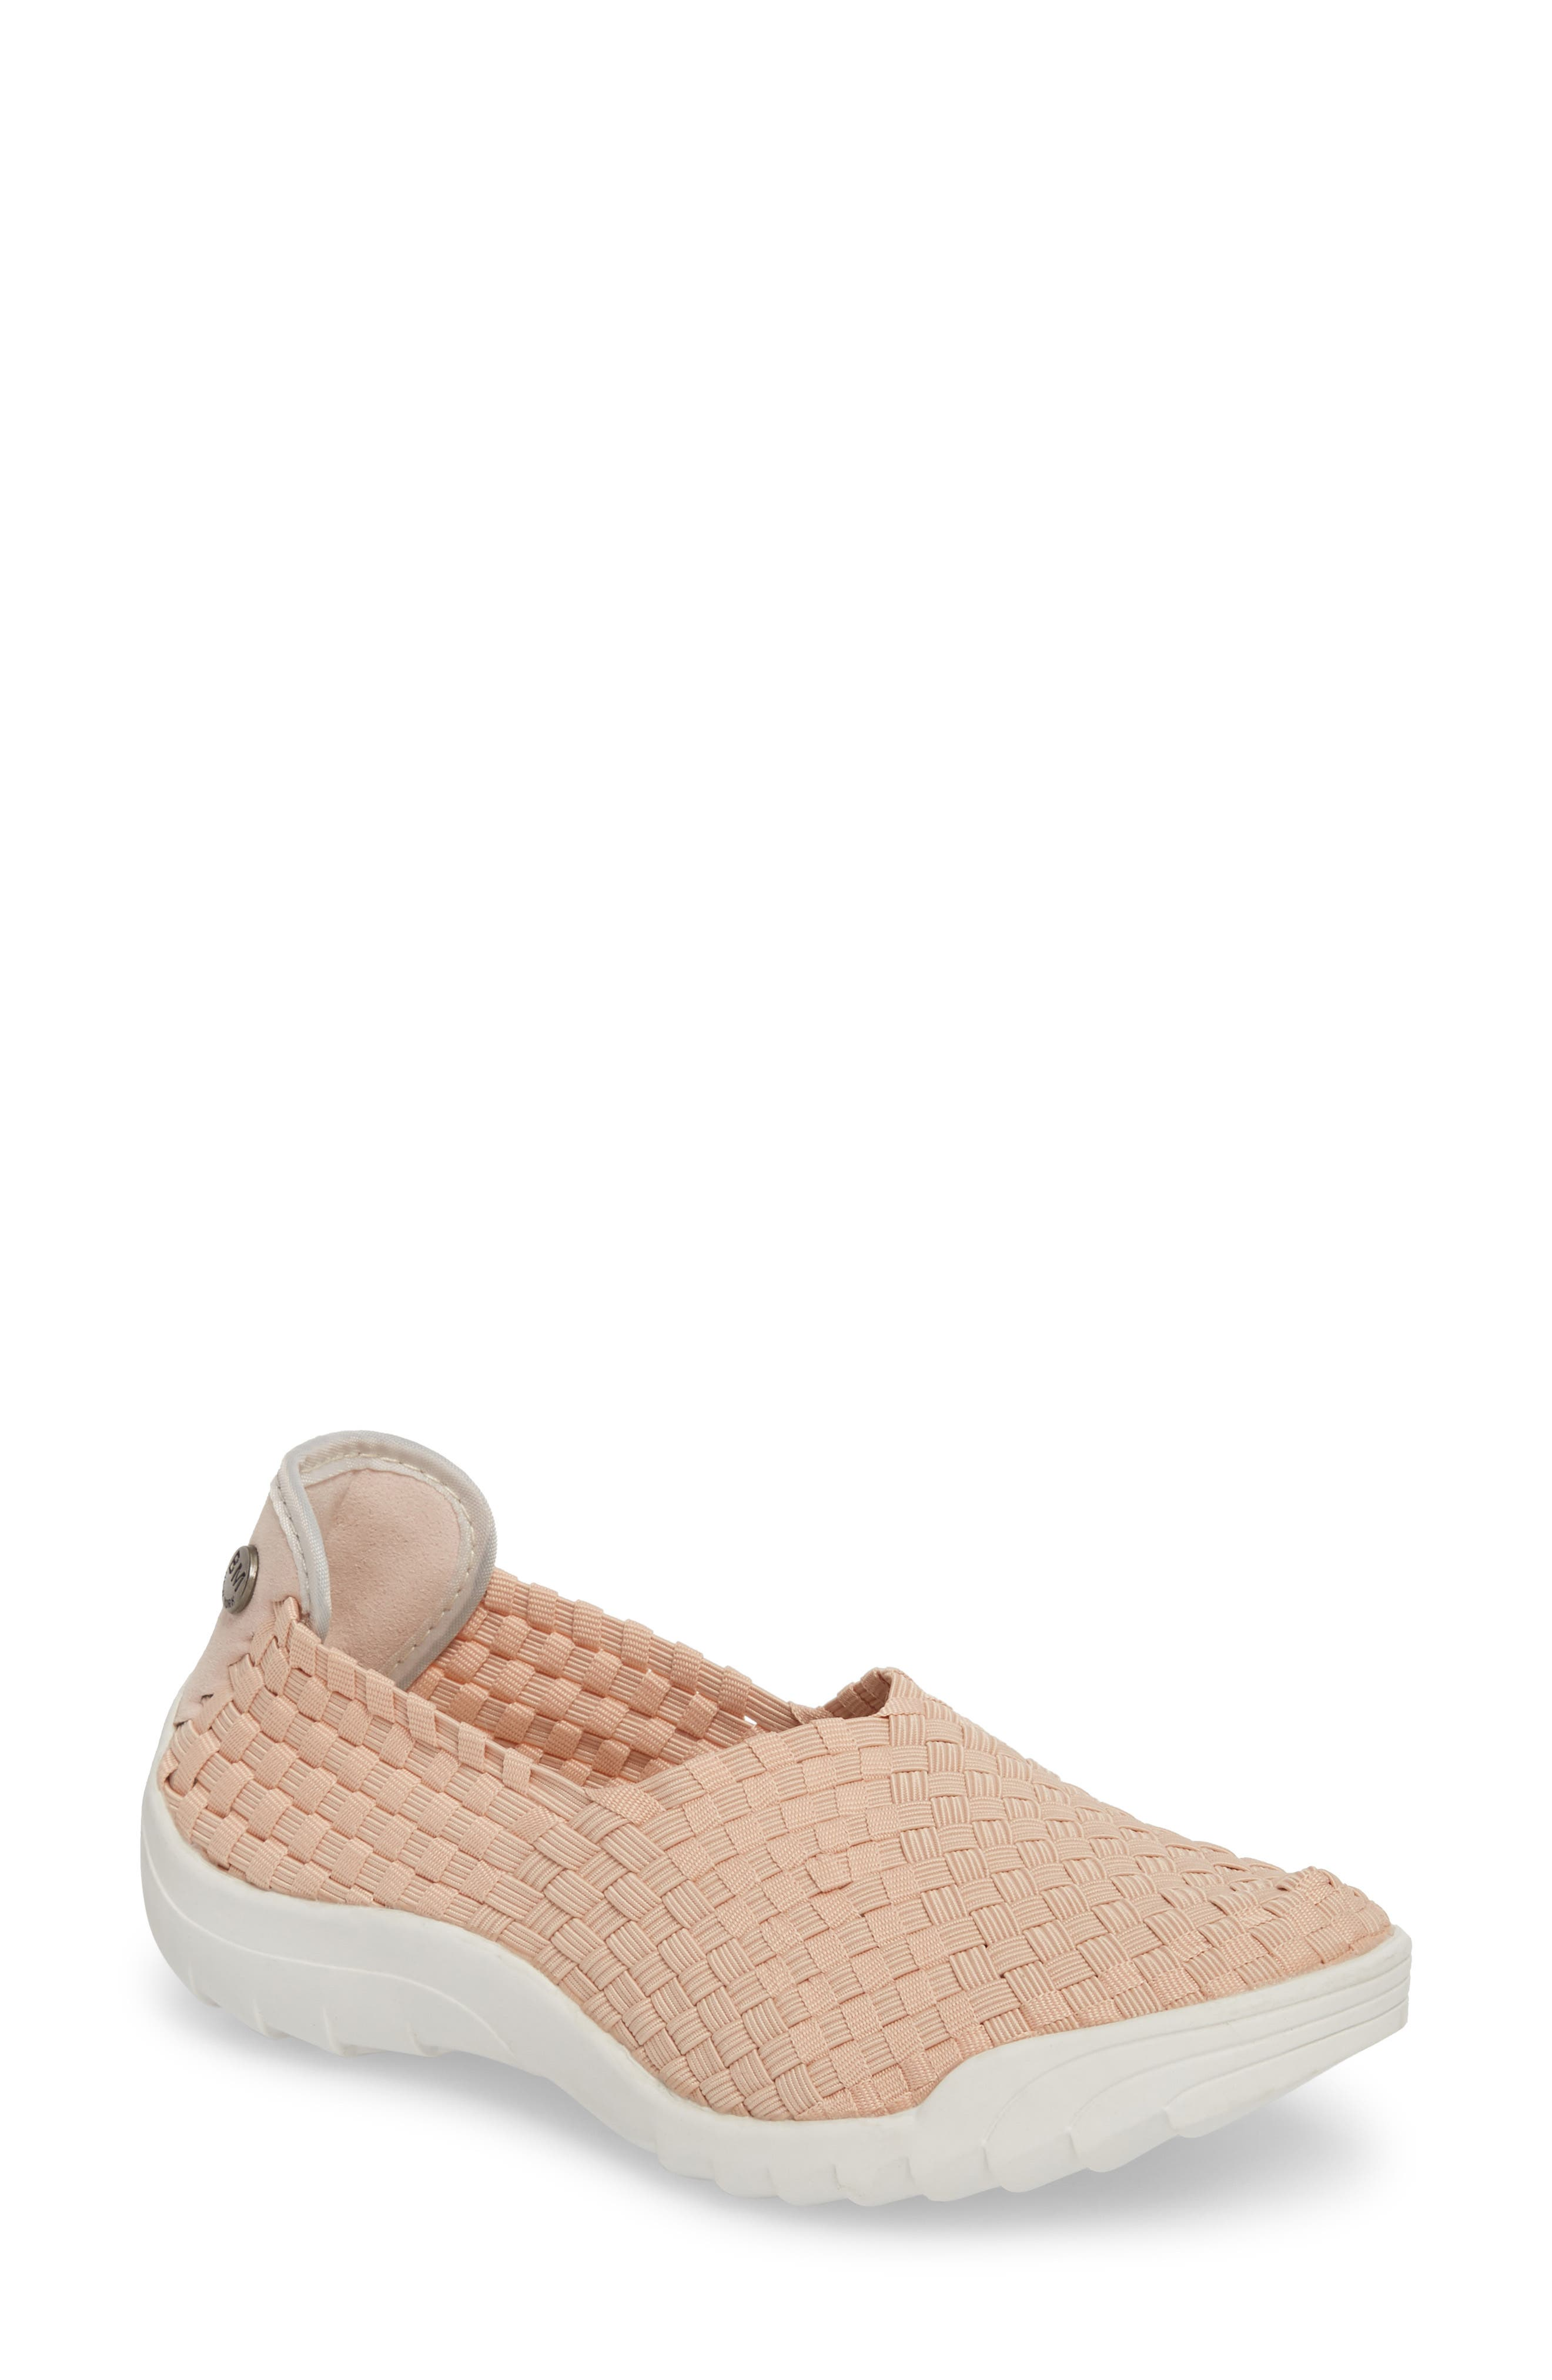 Rigged Fly Slip-On Sneaker,                             Main thumbnail 1, color,                             Blush